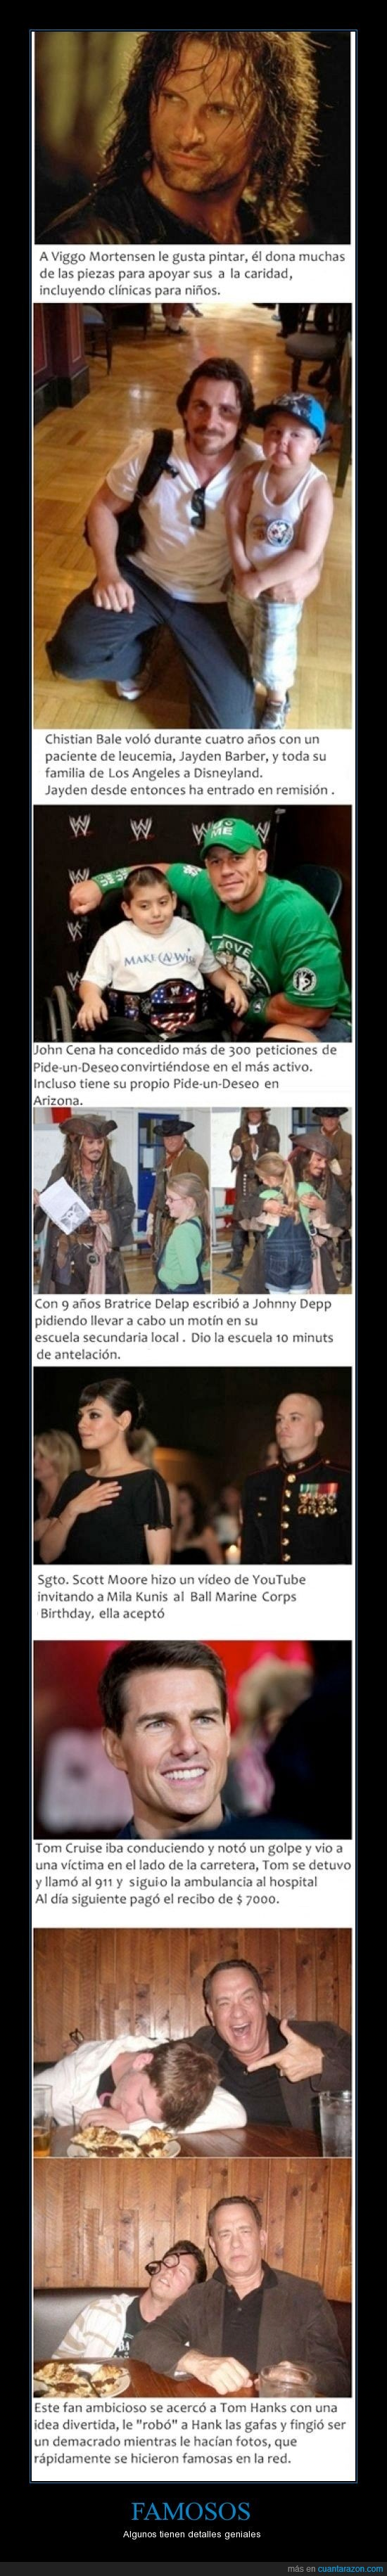 bale,cena,christian,cruise,depp,famosos,hanks,john,johnny,kunis,mila,mortensen,tom,viggo